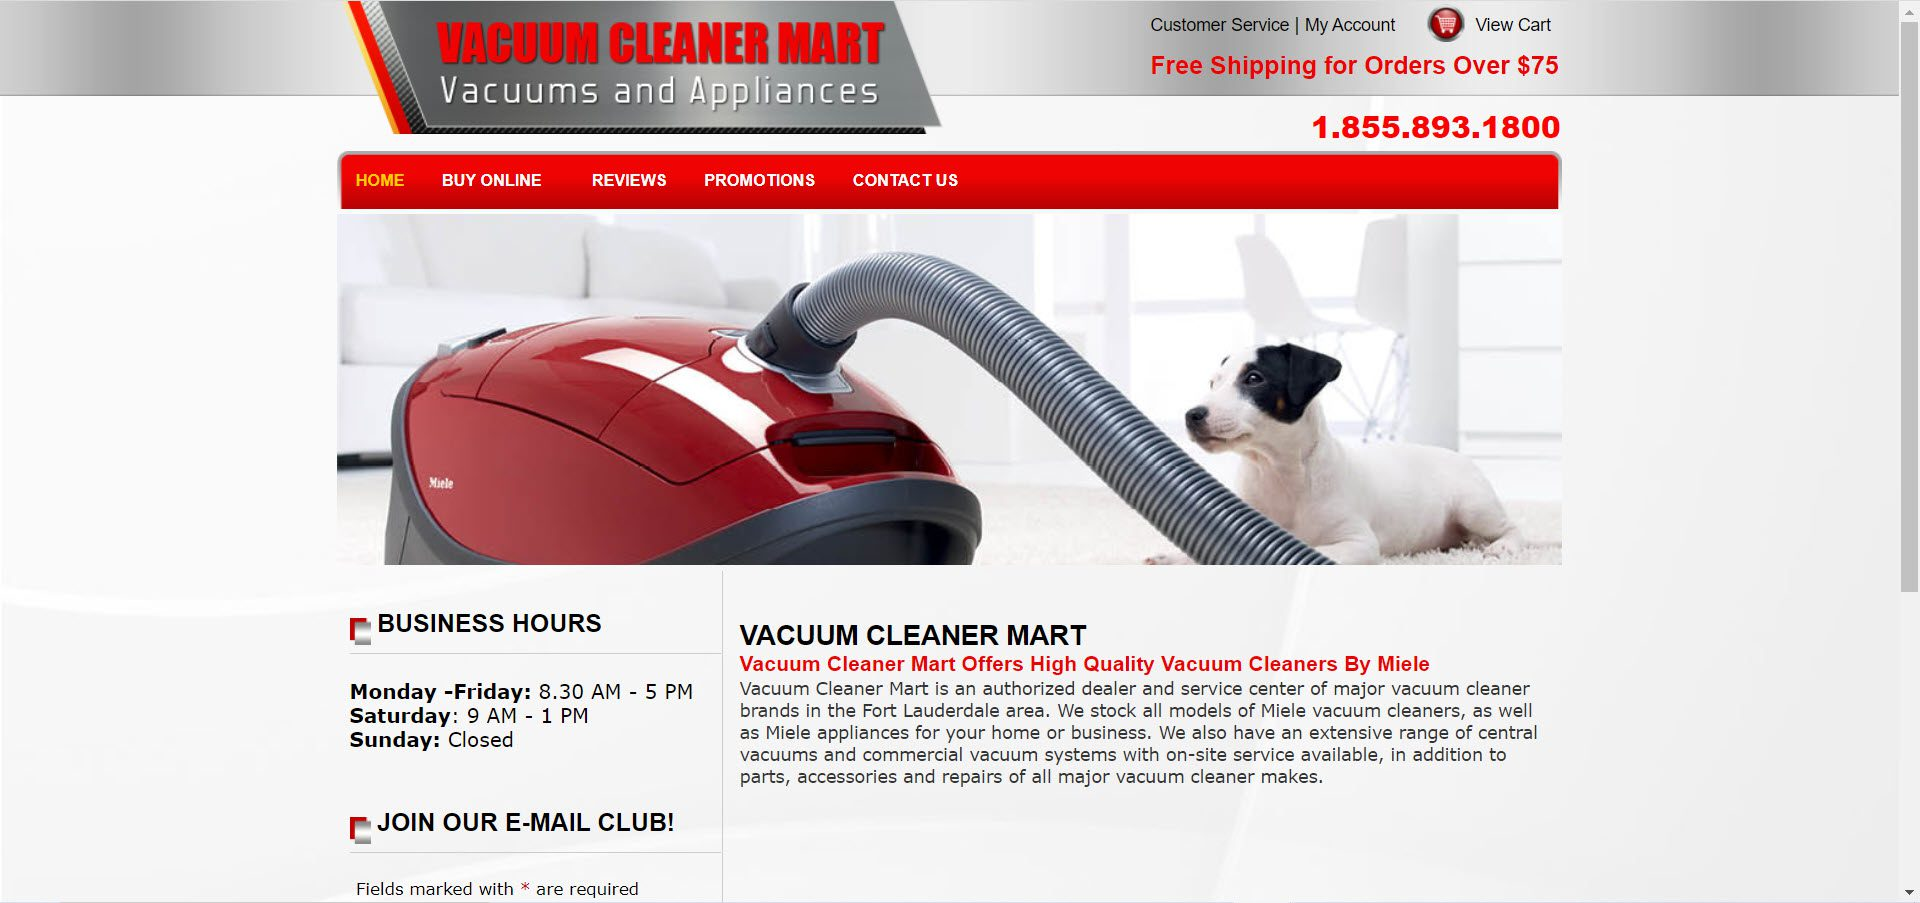 Cleaning Products Affiliate Programs - Vacuum Cleaner Mart